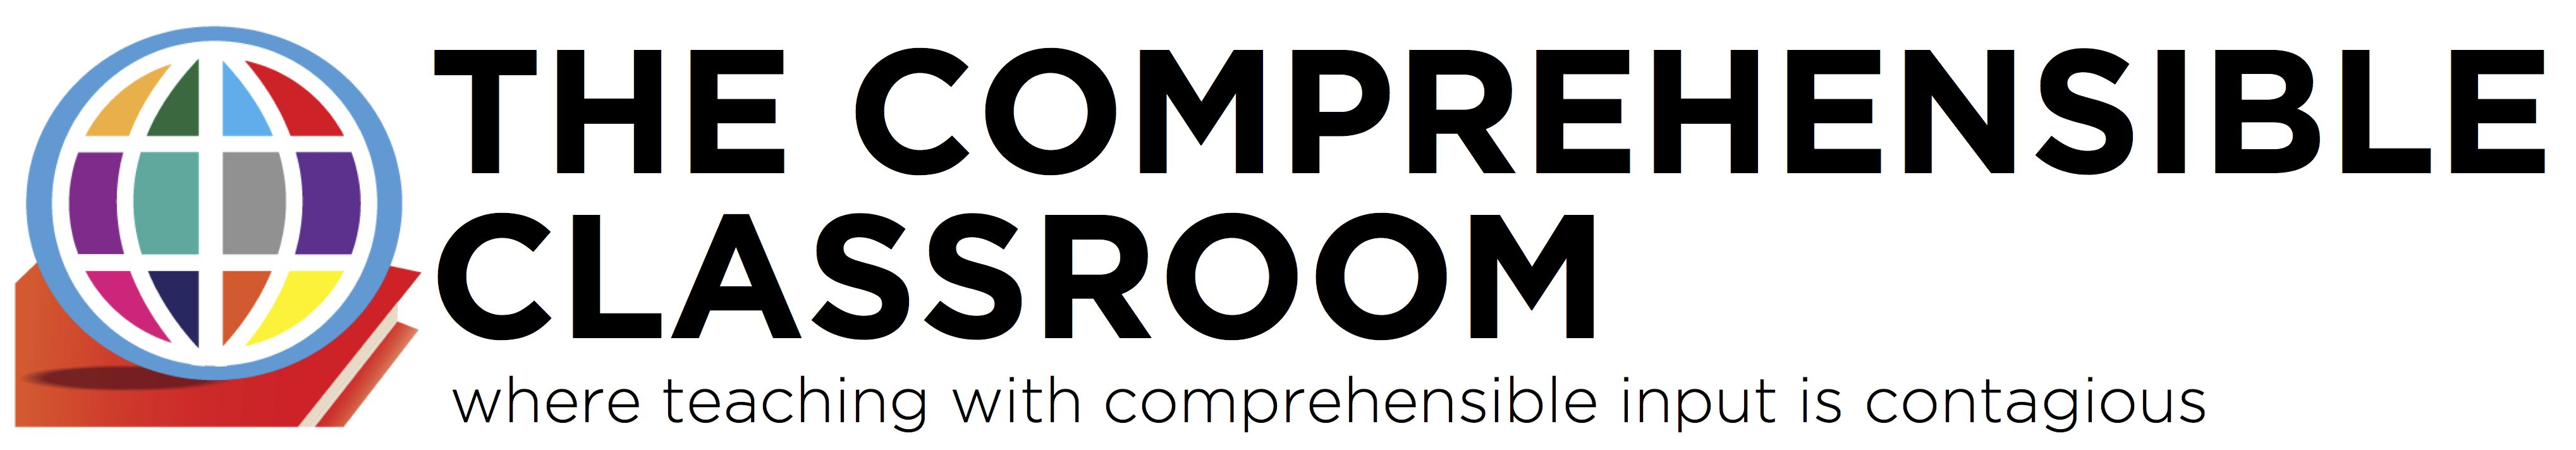 The Comprehensible Classroom